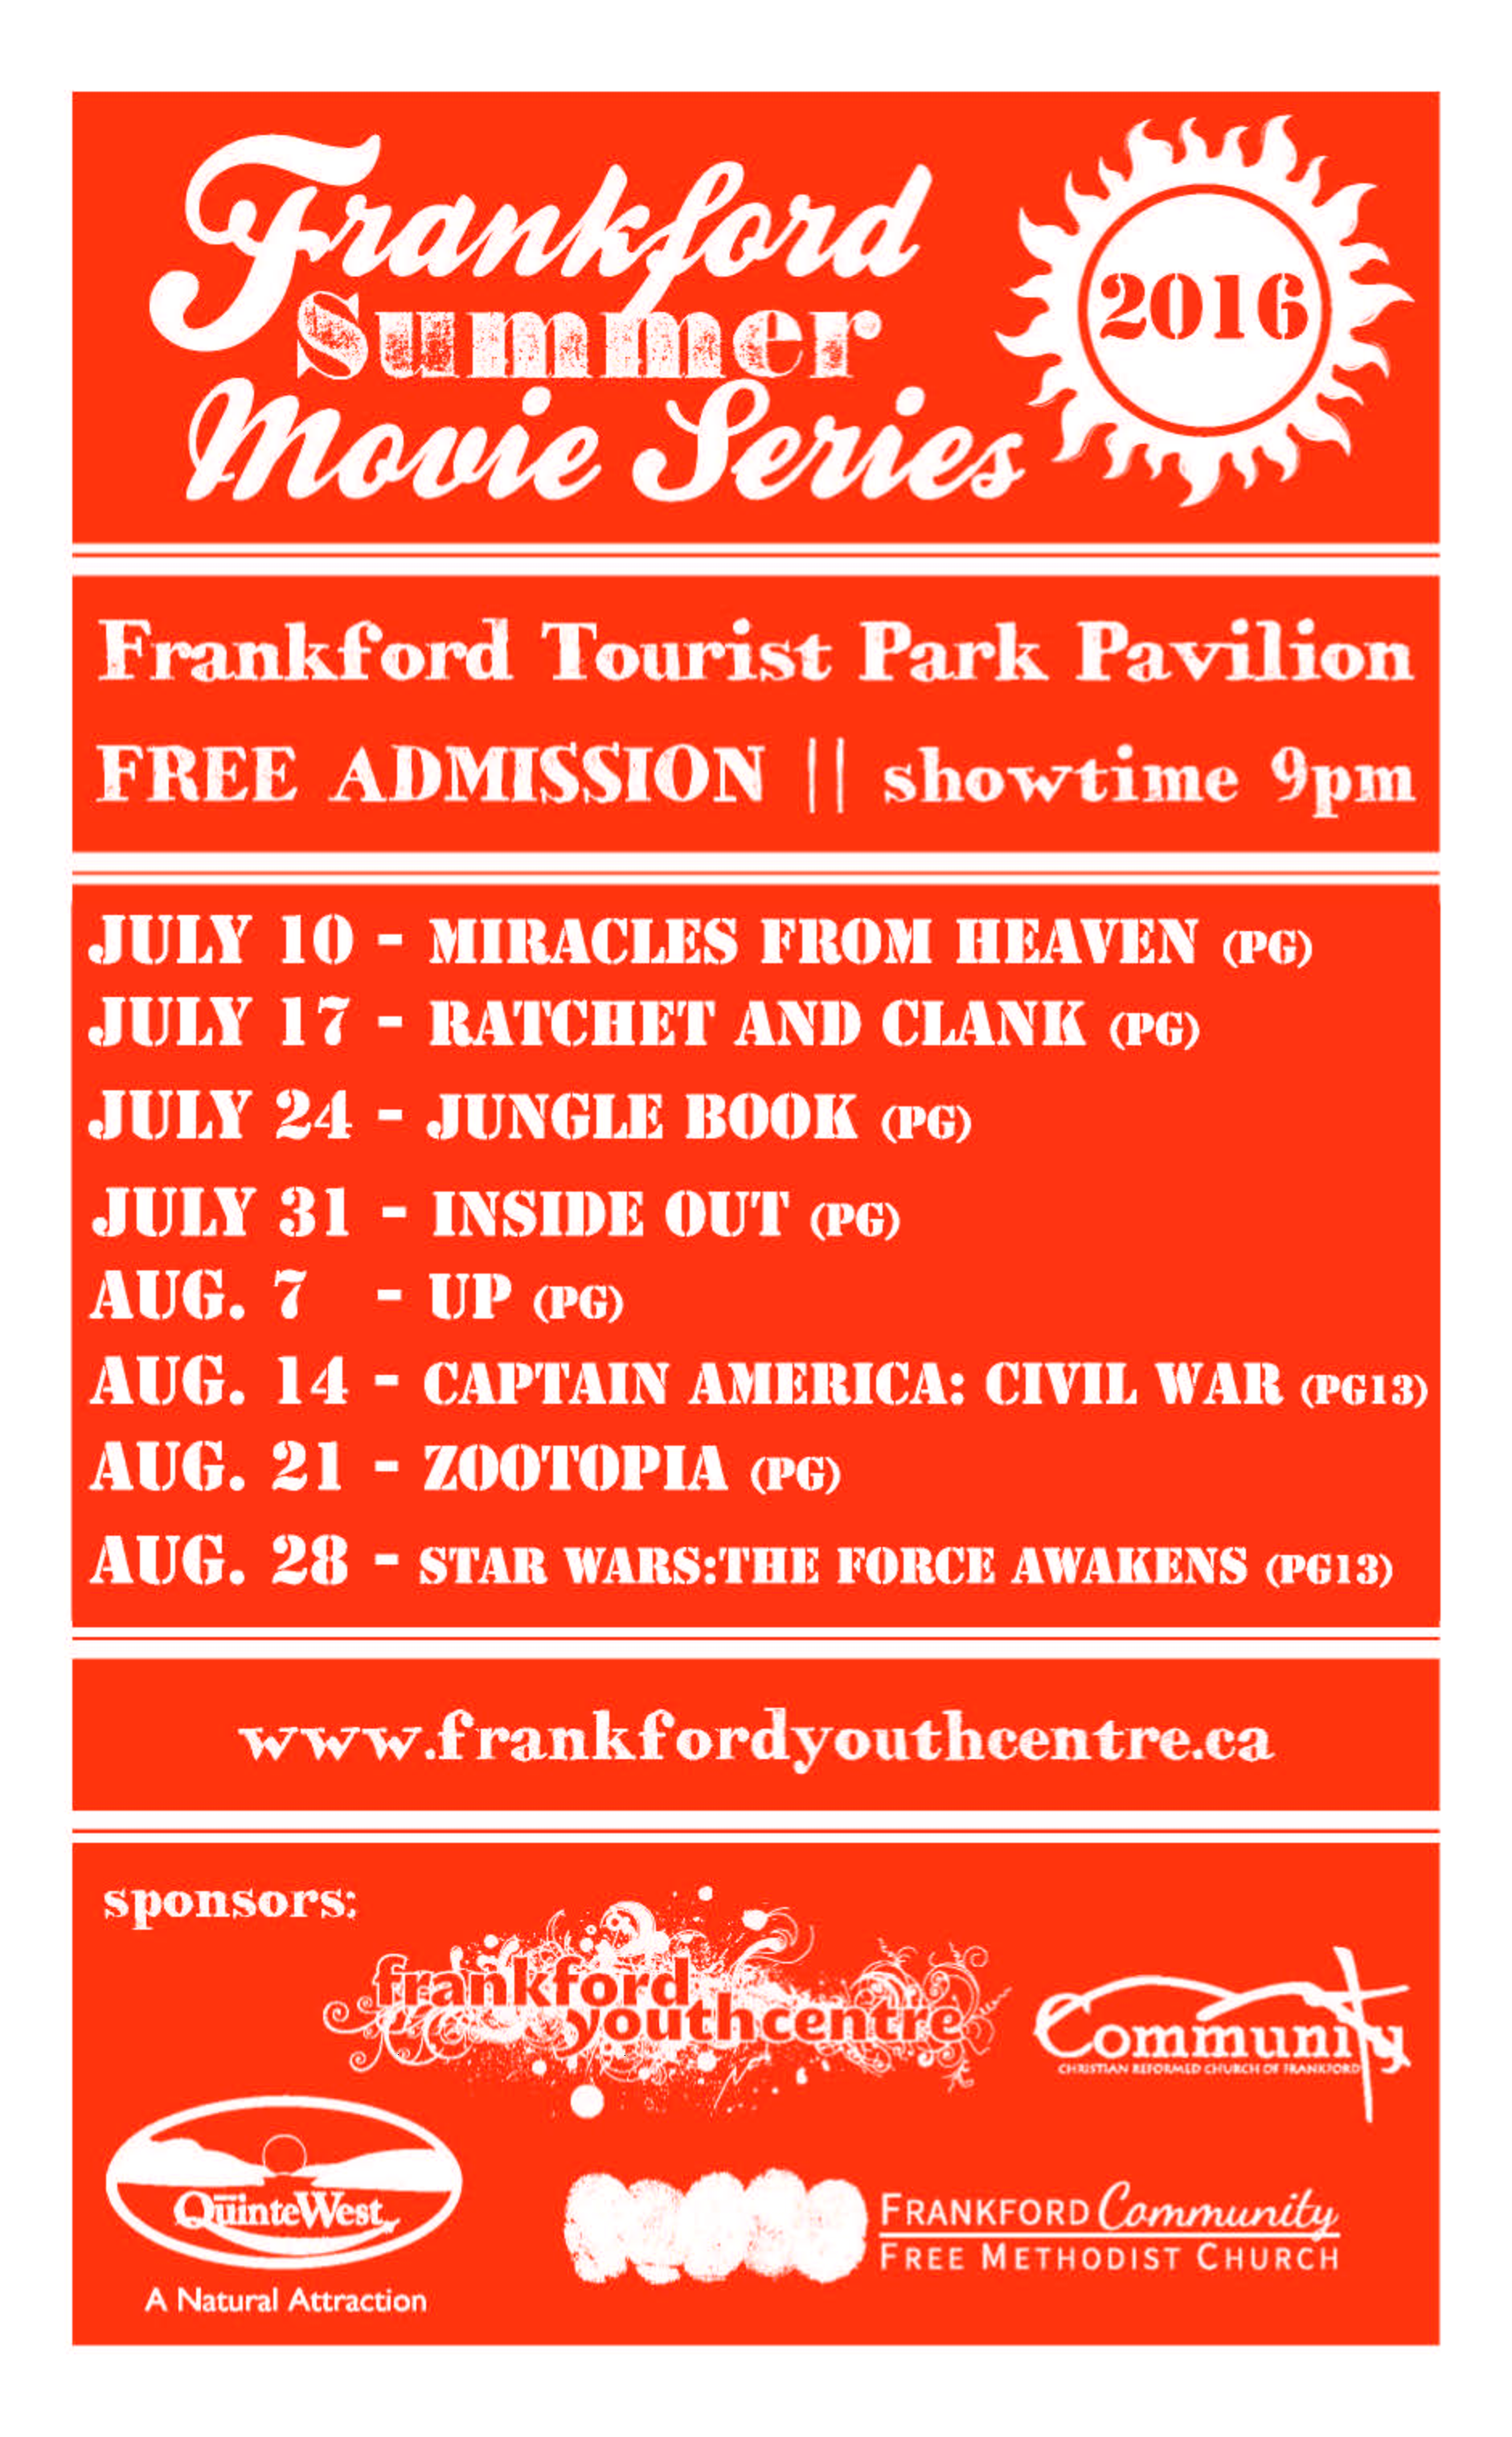 Frankford Summer Movie Series - Bay of Quinte Tourism